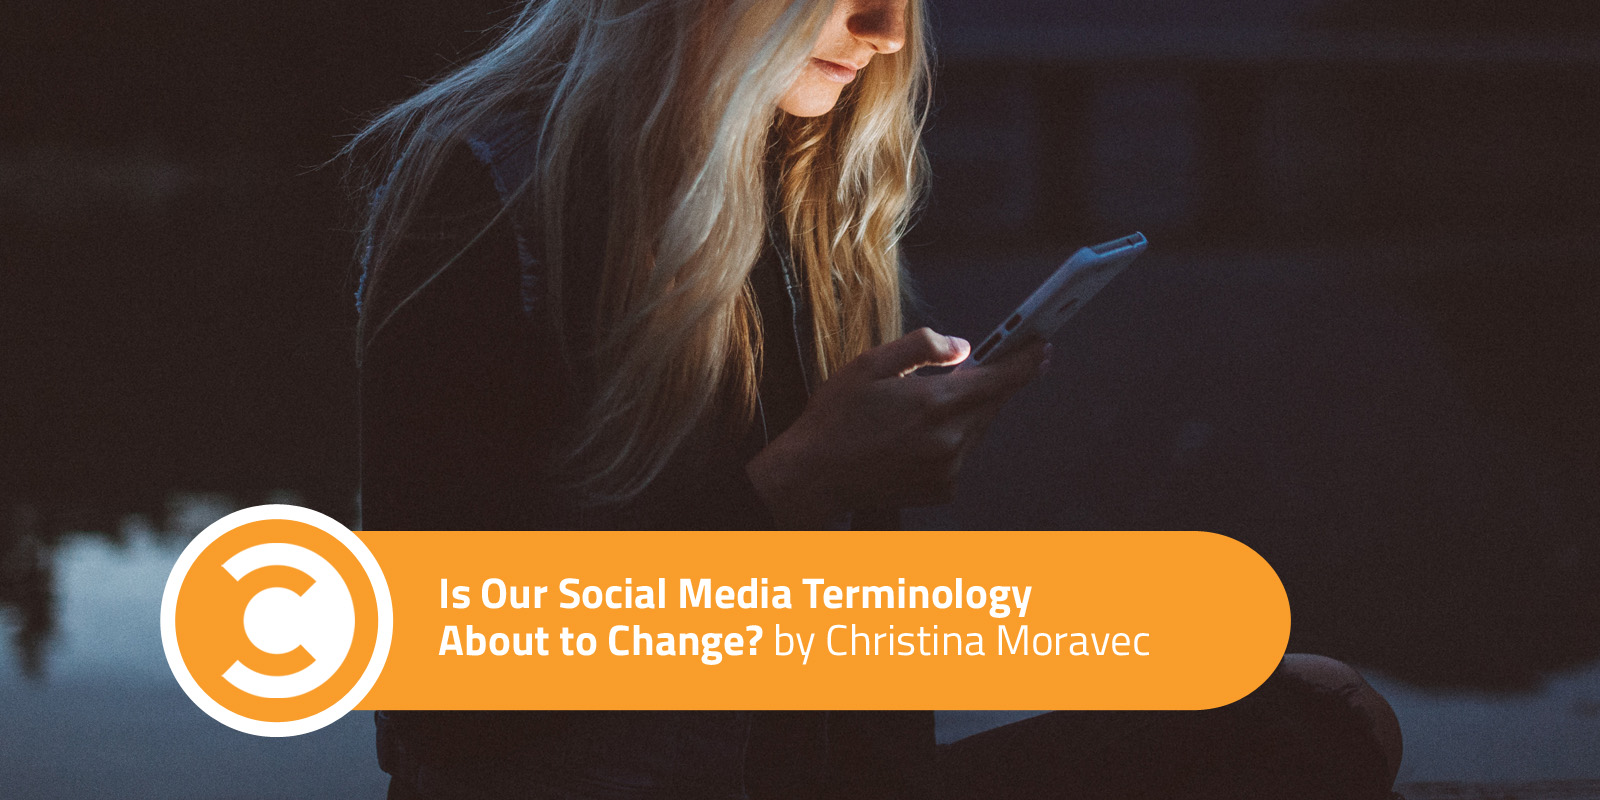 Is Our Social Media Terminology About to Change